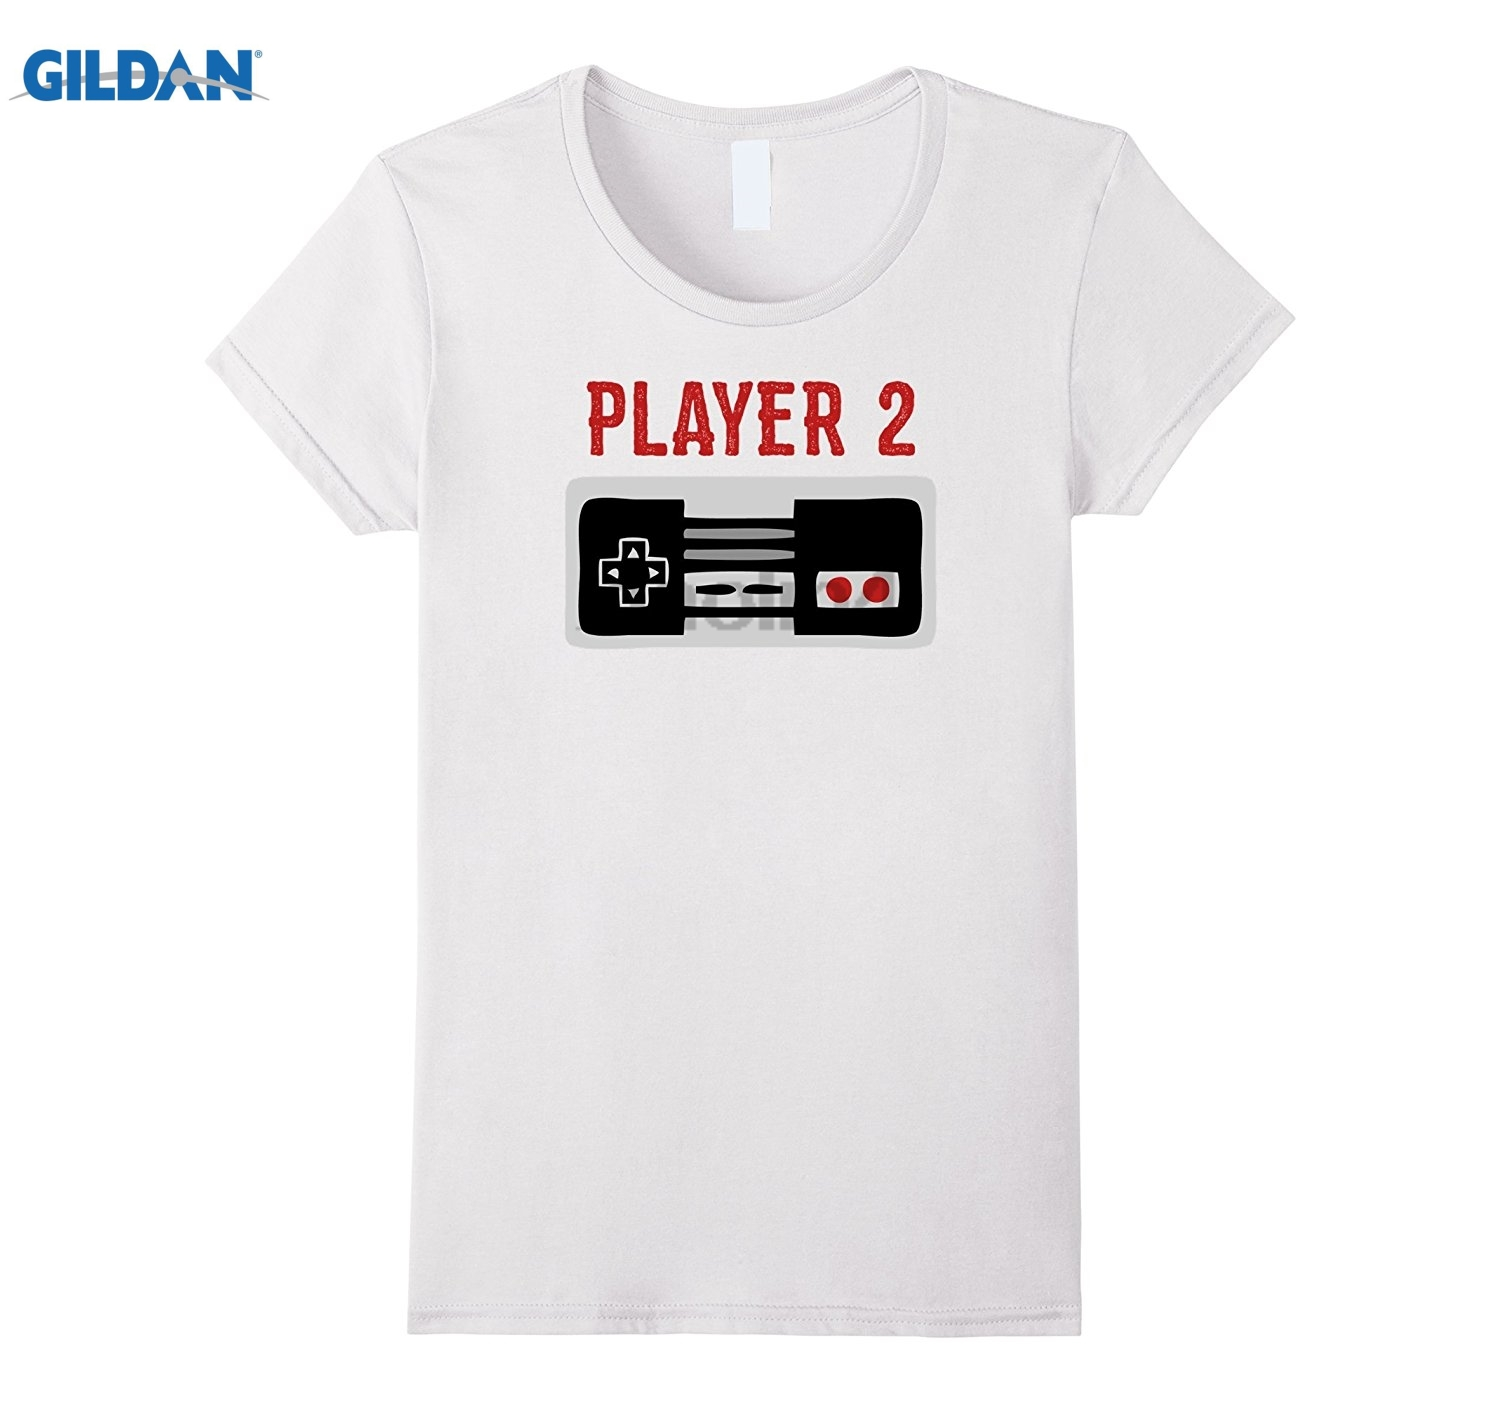 GILDAN Matching Family Shirt Player 2 Video Game Shirt Mens cartoon fun T-shirt sunglasses women T-shirt ...